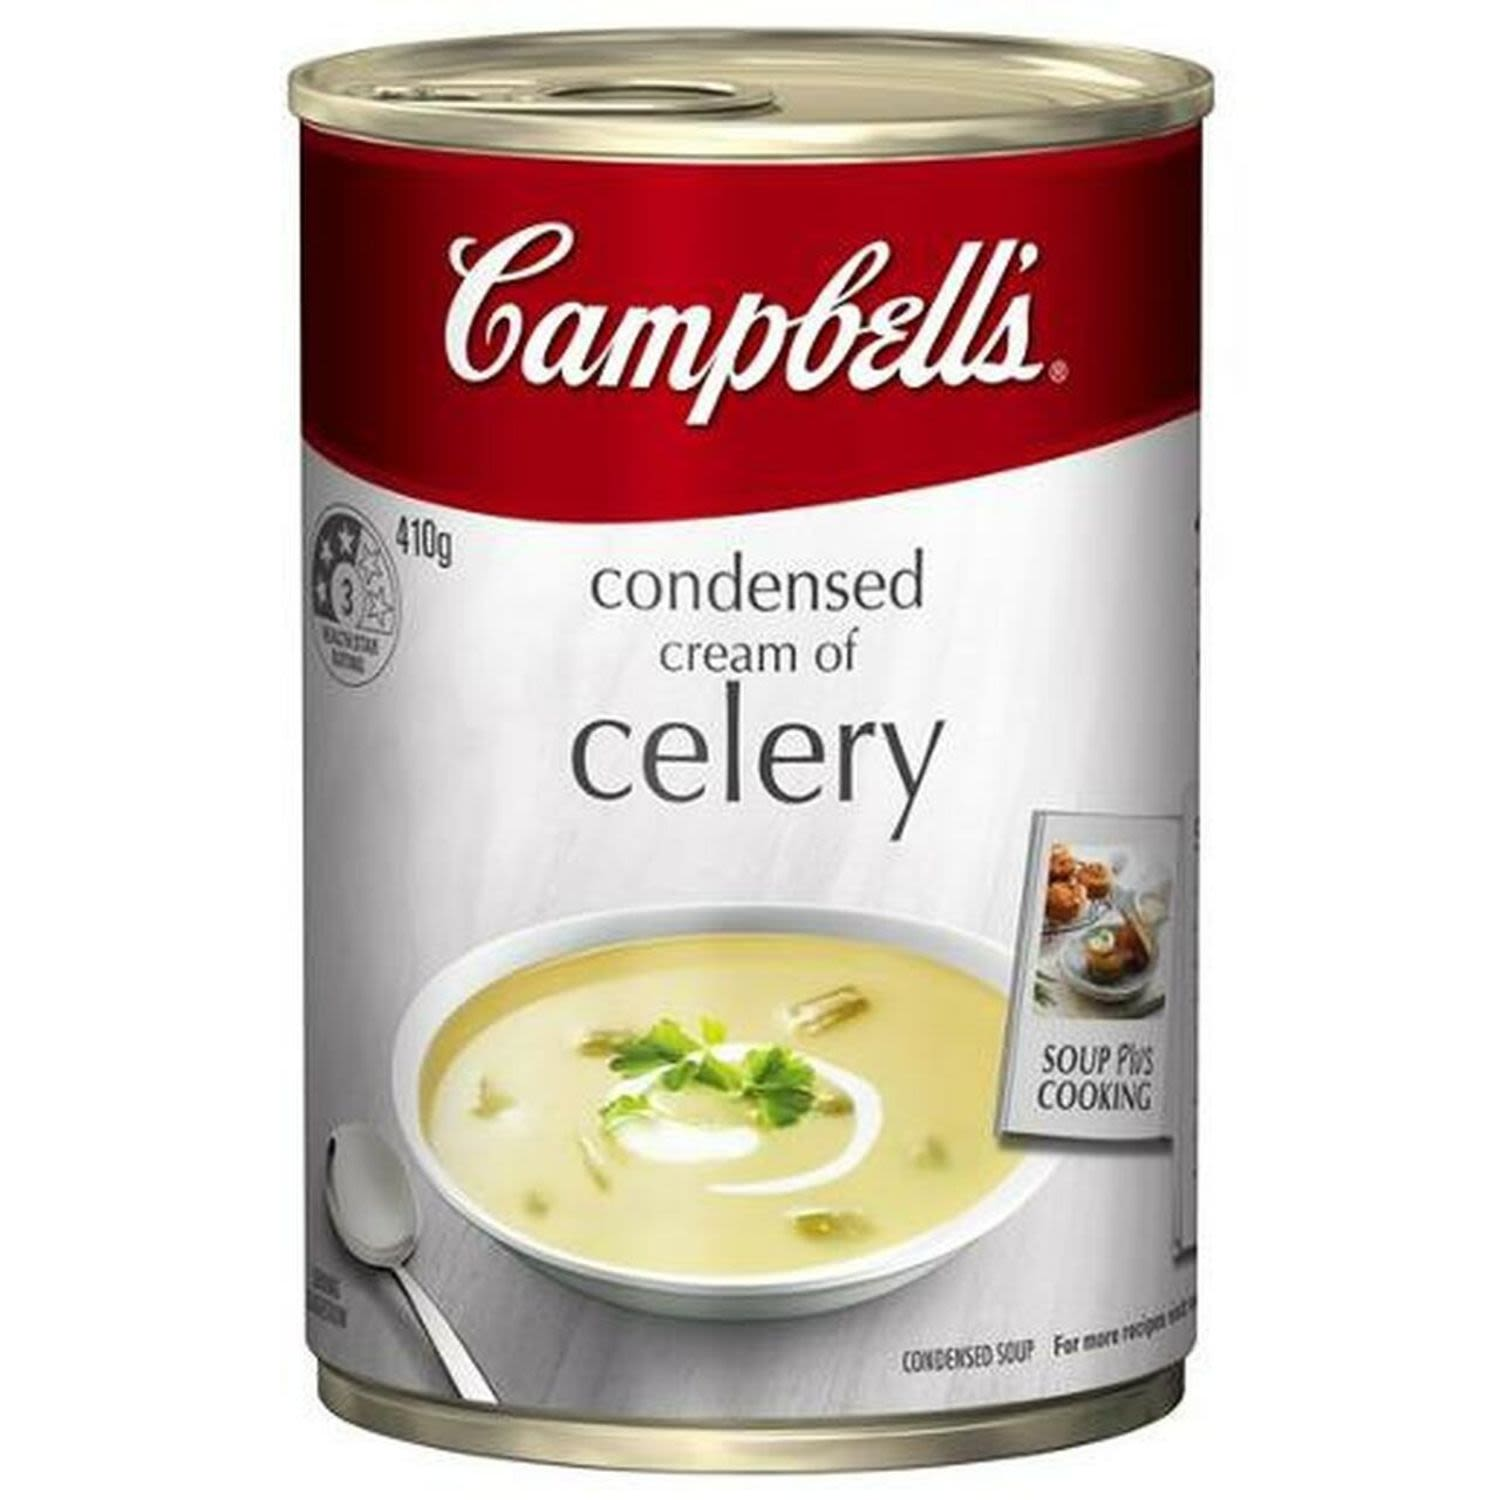 Campbell's Soup Condensed Cream of Celery, 410 Gram